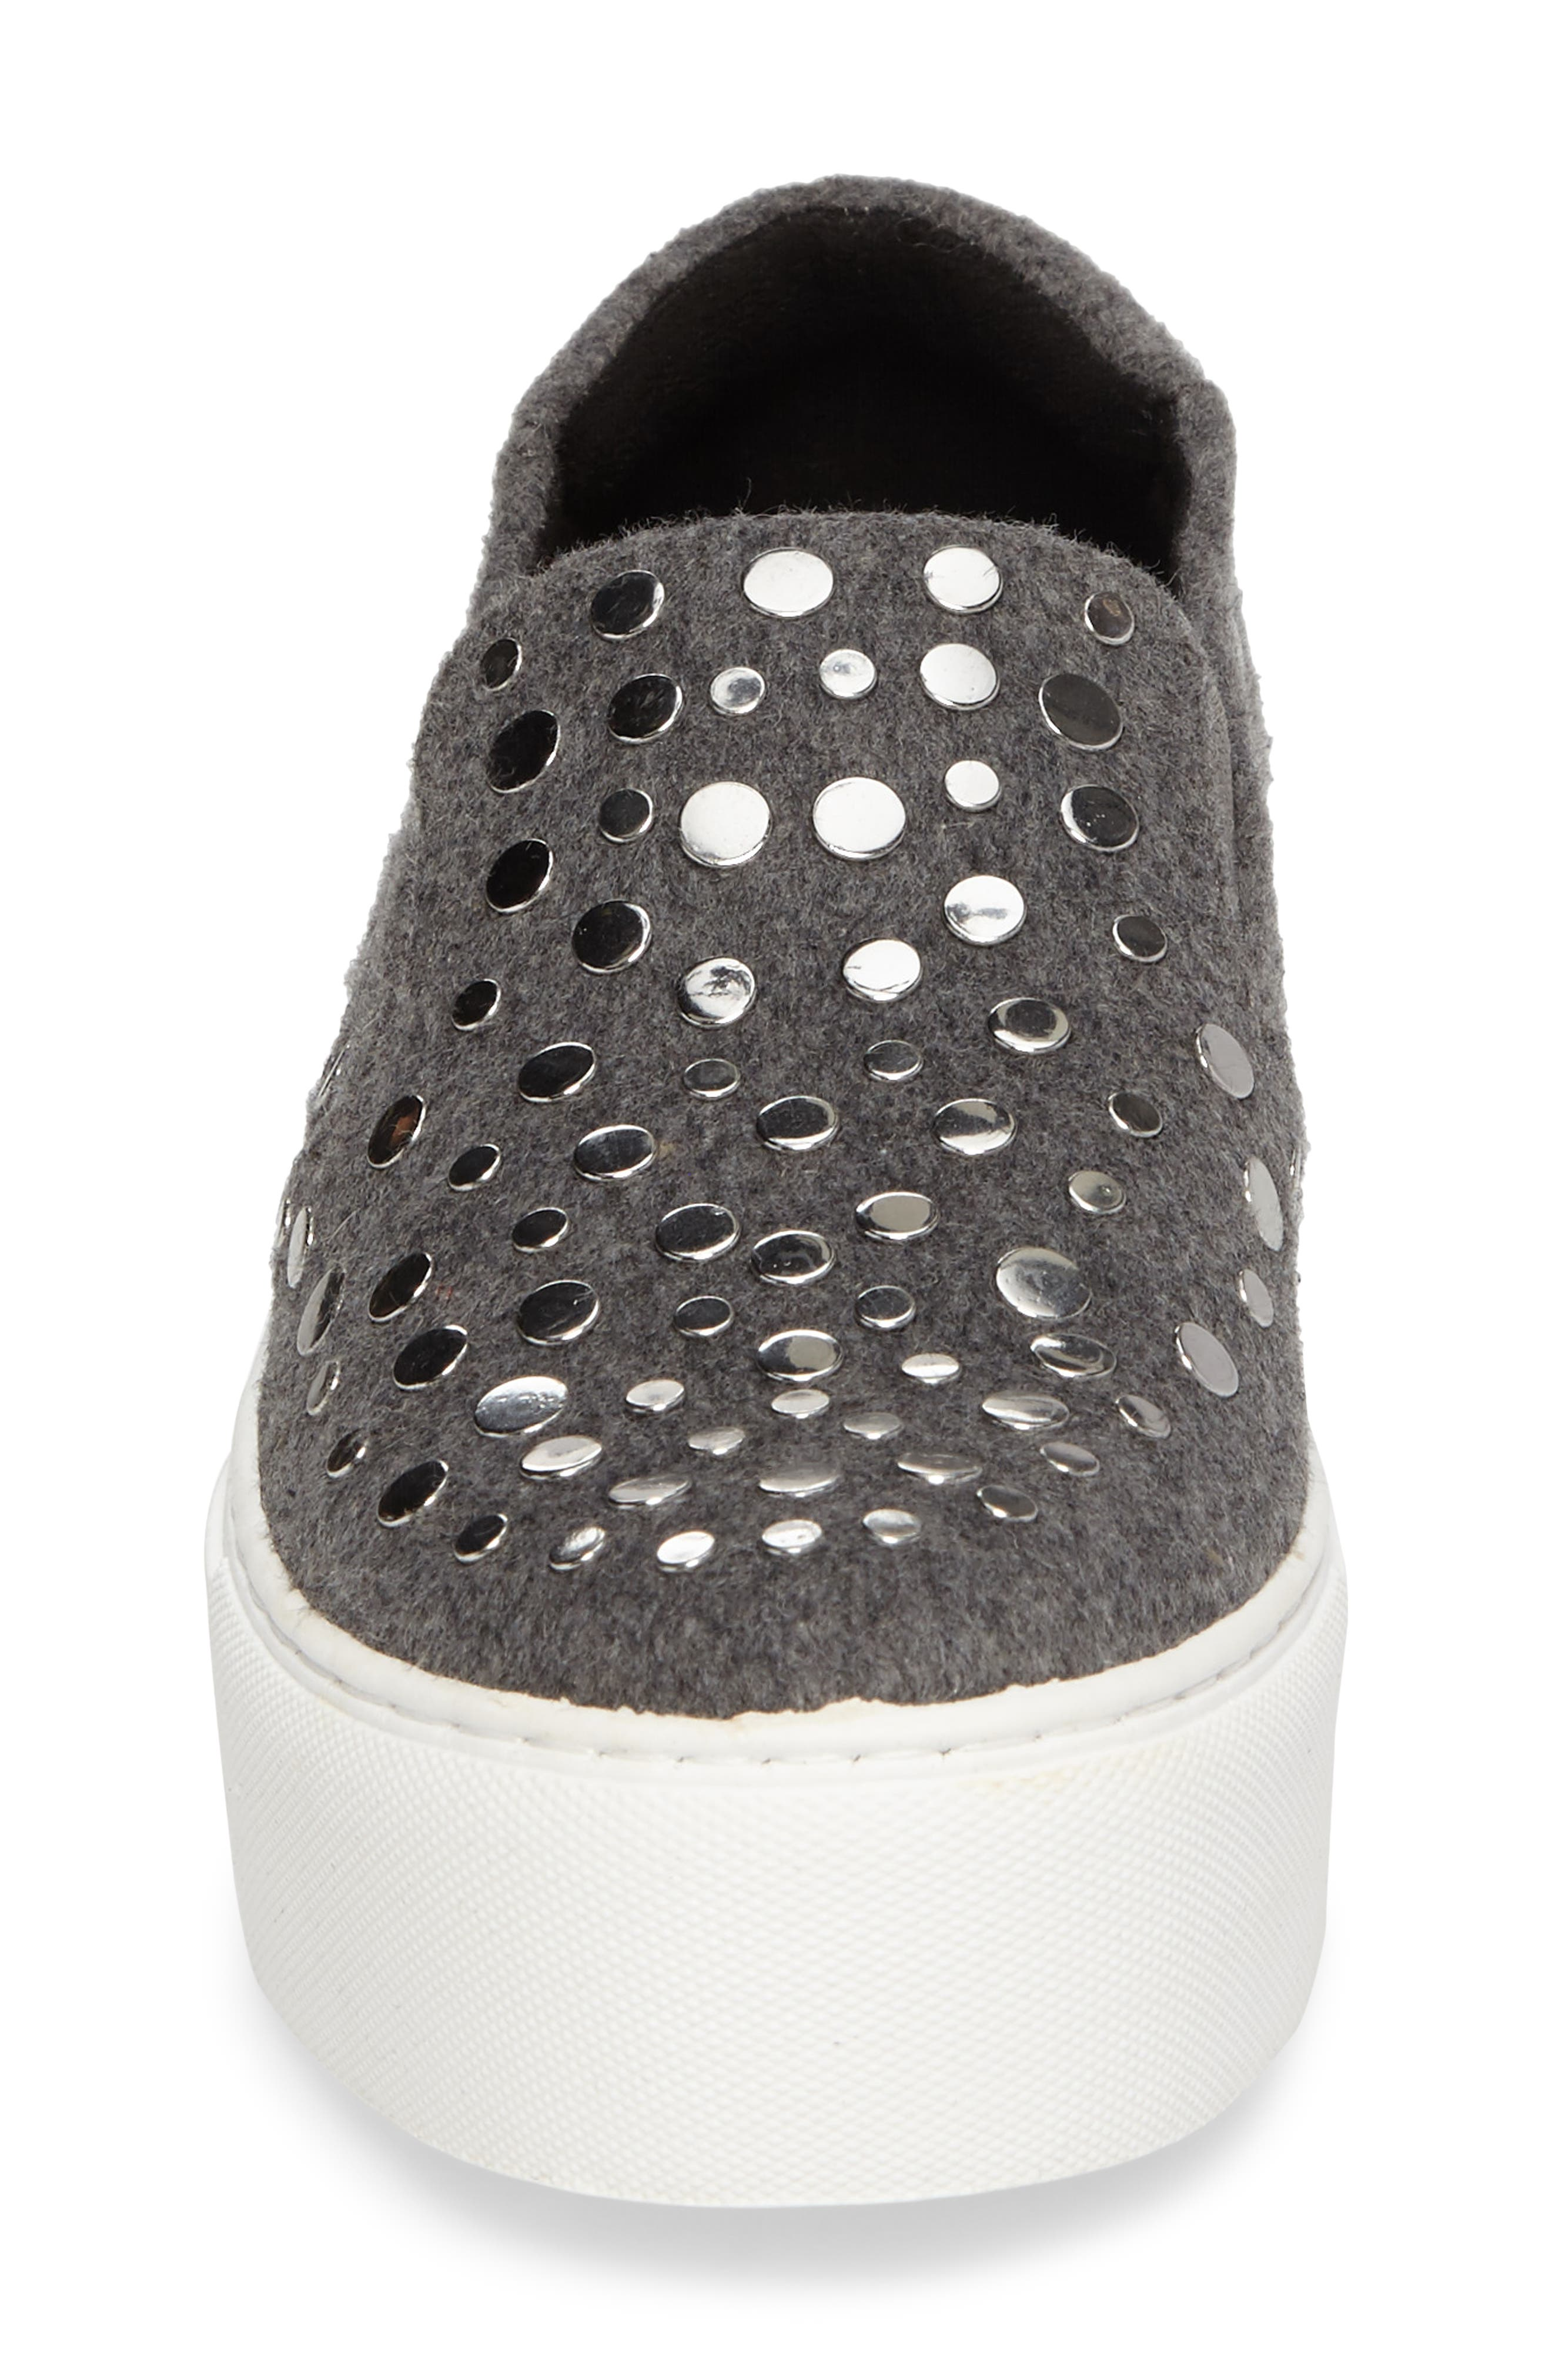 Jeyda Slip-On Sneaker,                             Alternate thumbnail 5, color,                             Grey Felt Fabric